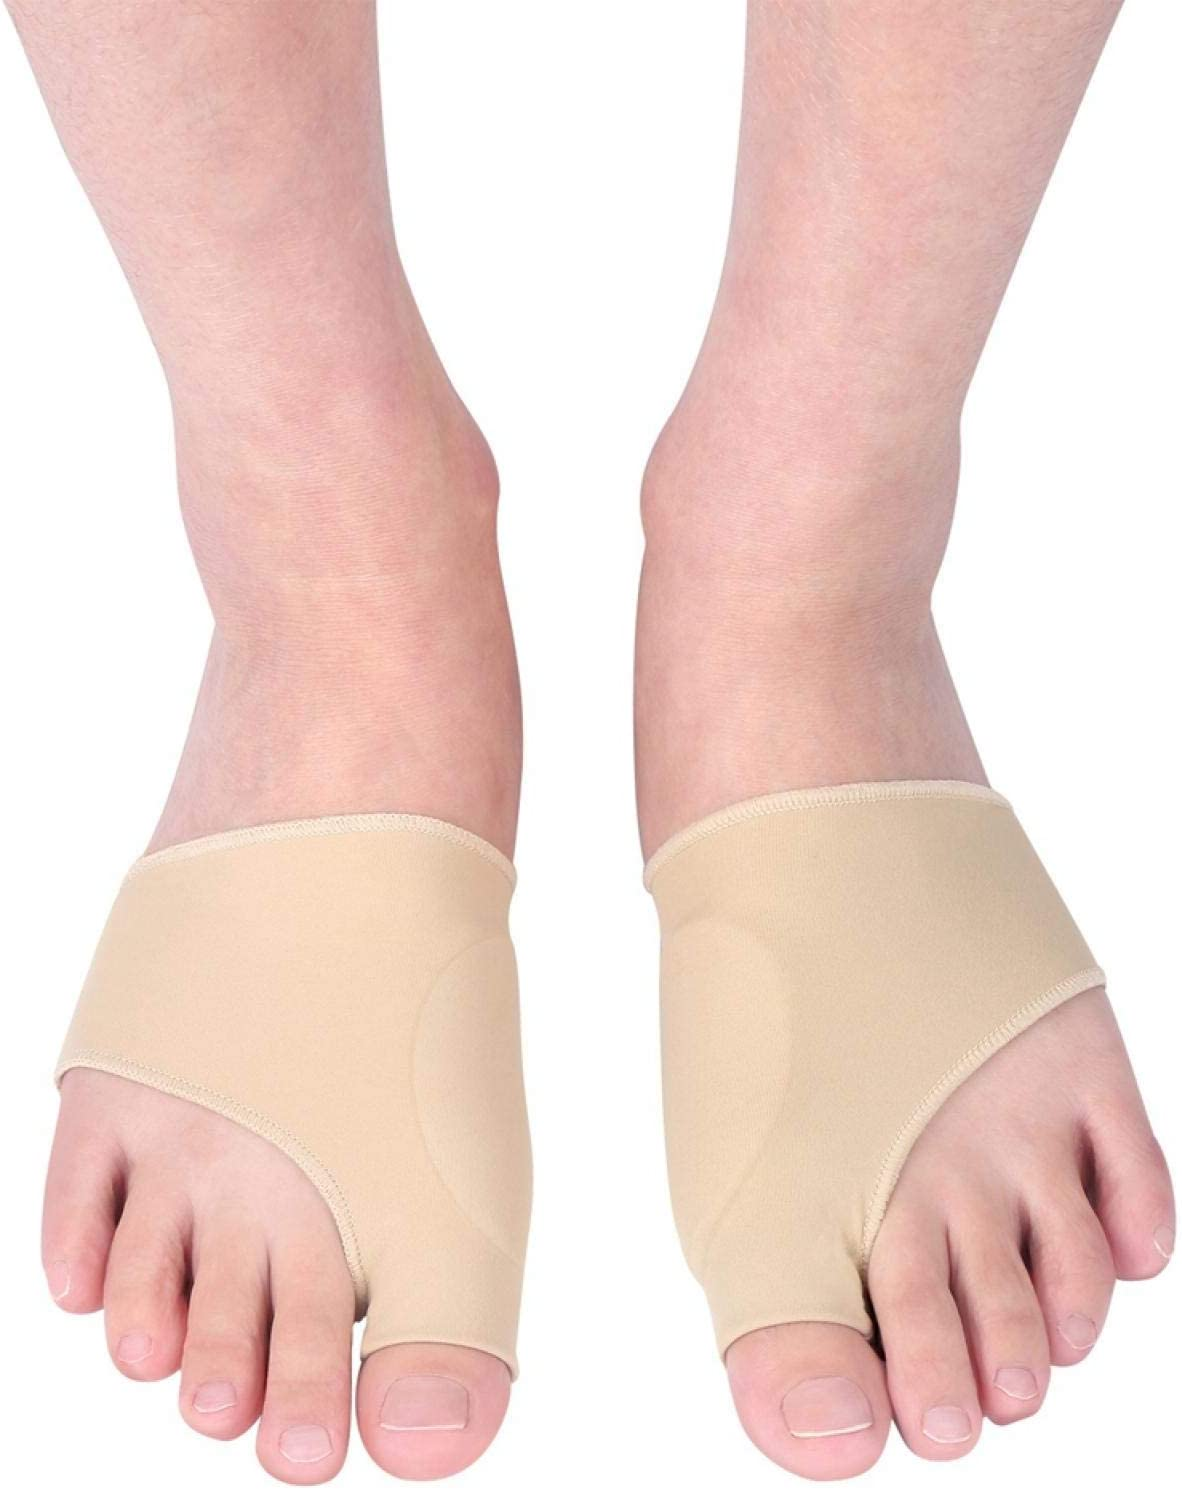 Hallux Valgus Corrector Band Super Soft NEW before selling Pad Low Bunion Slee Gel Price reduction